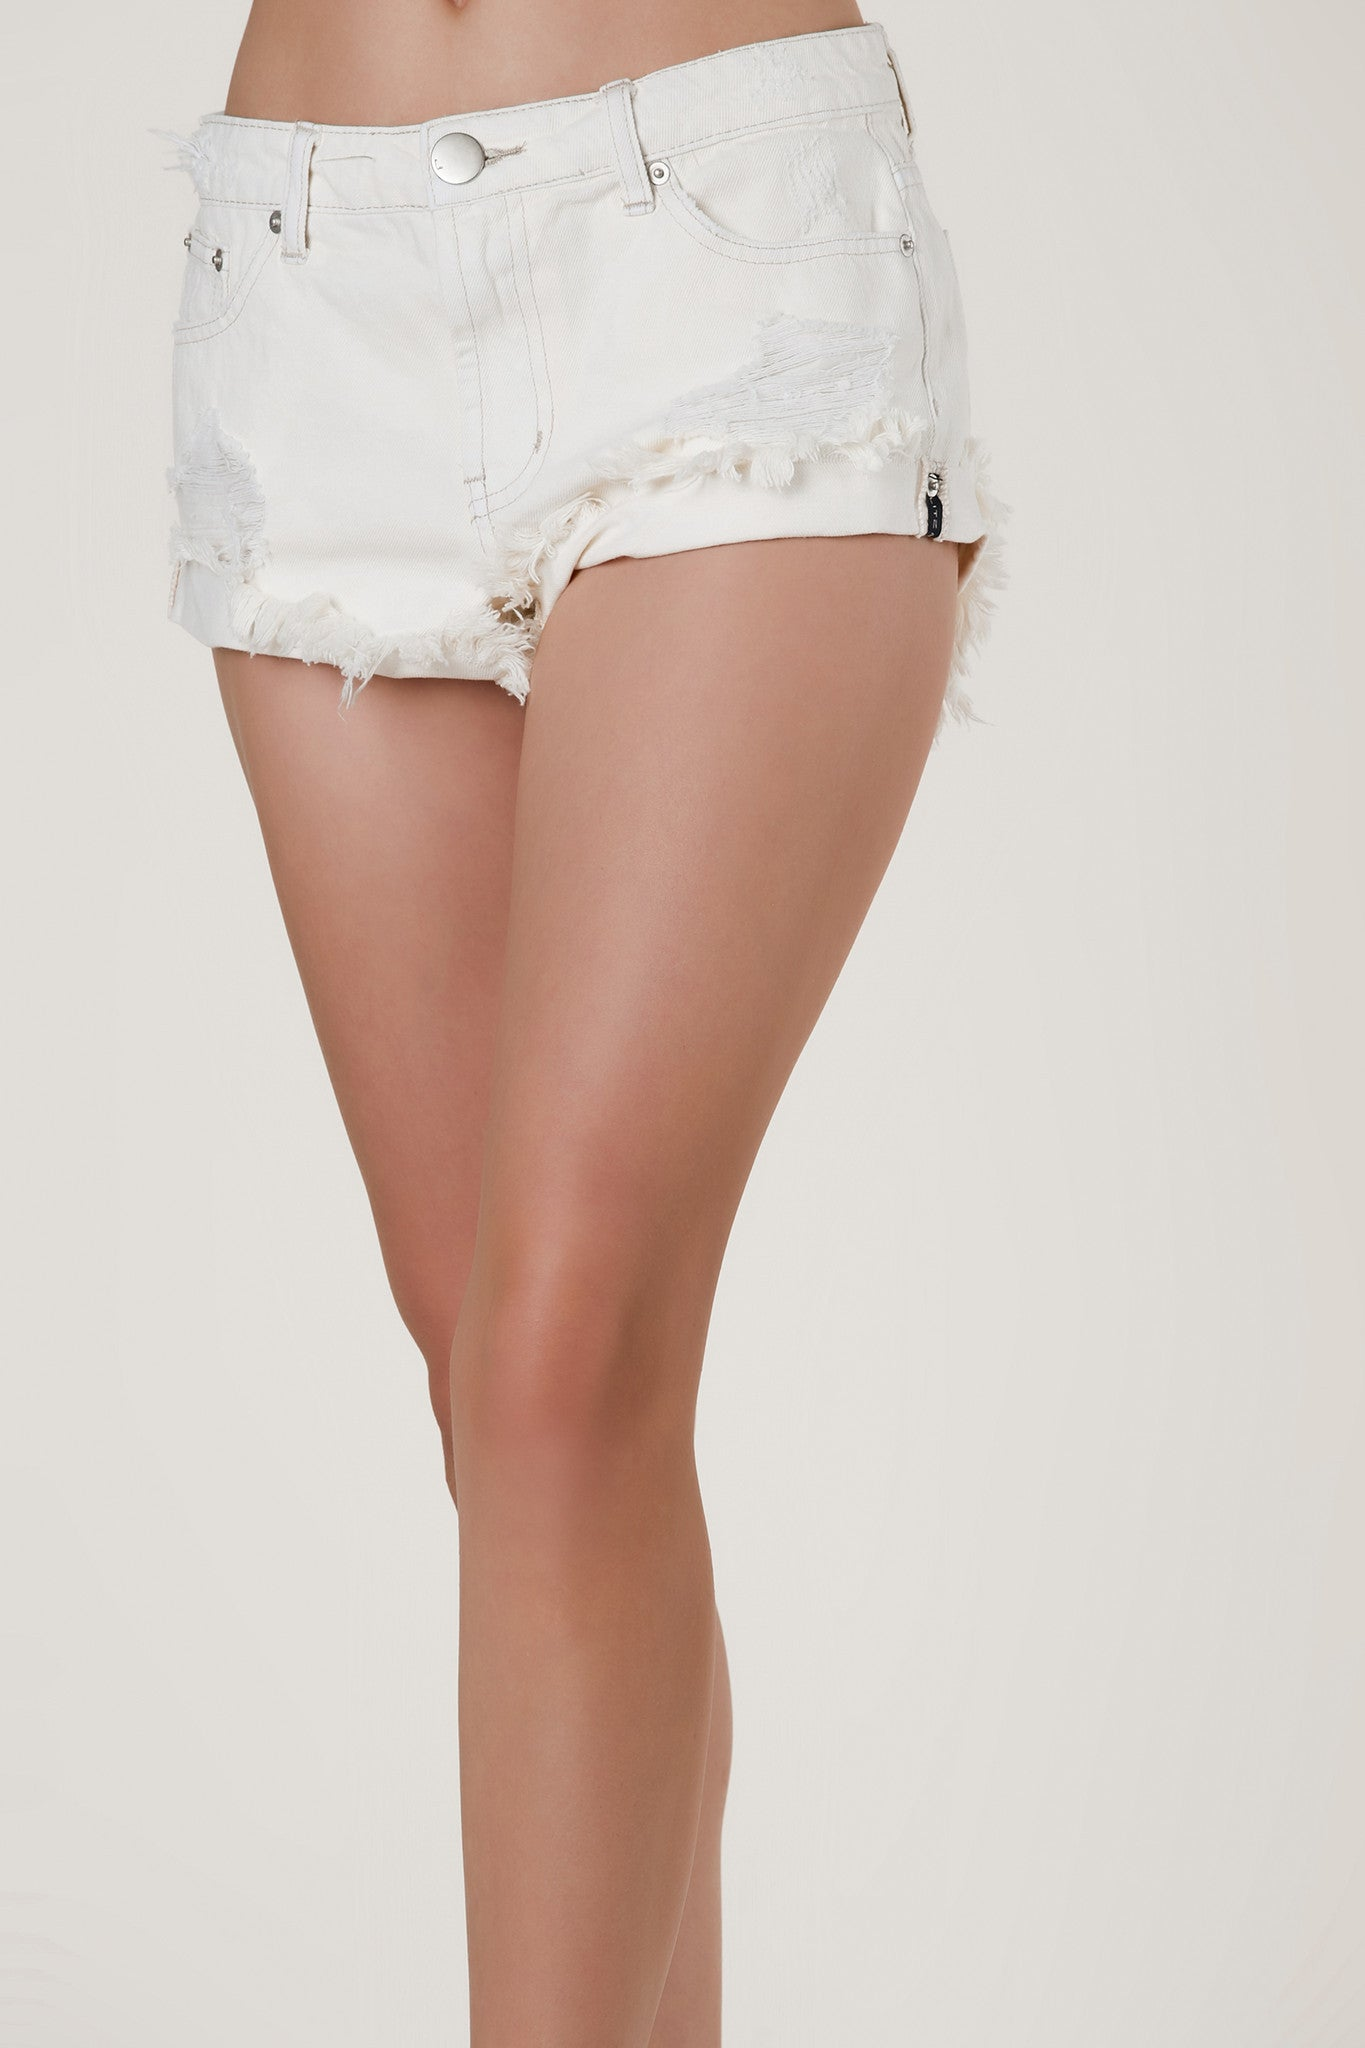 Beach Bum Distressed Denim Shorts